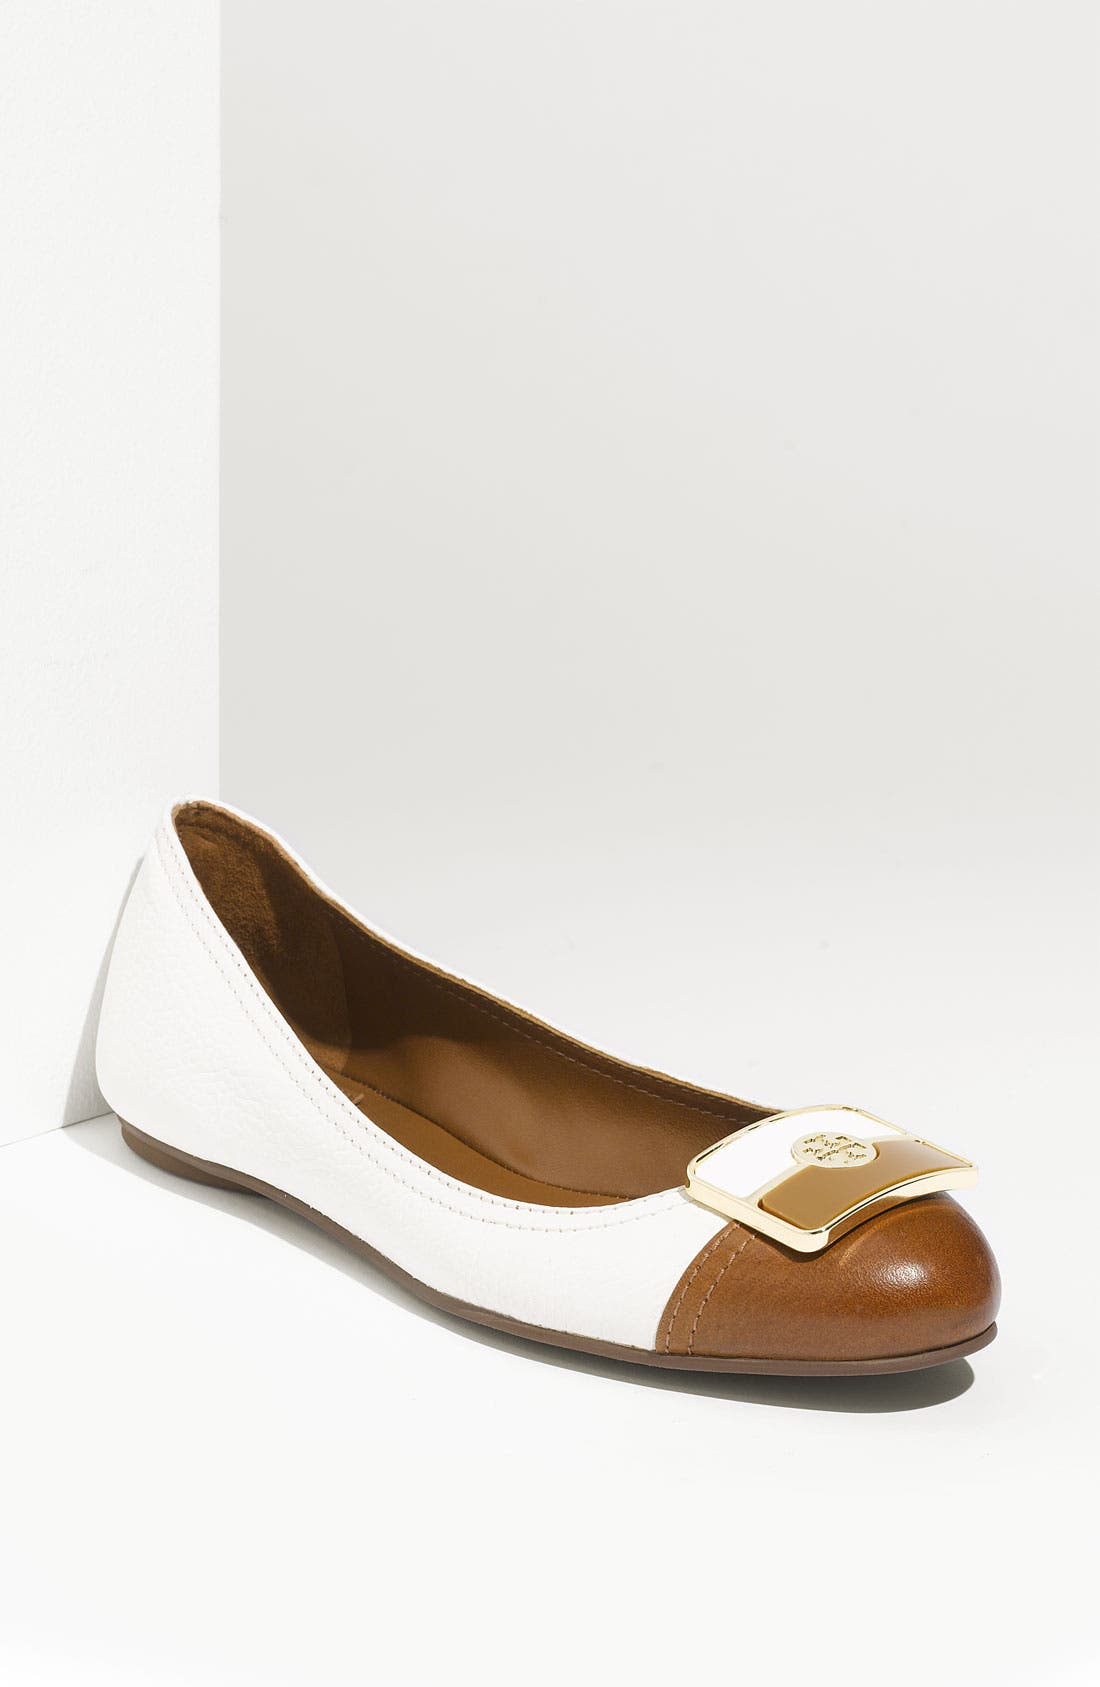 Main Image - Tory Burch 'Colette' Ballet Flat